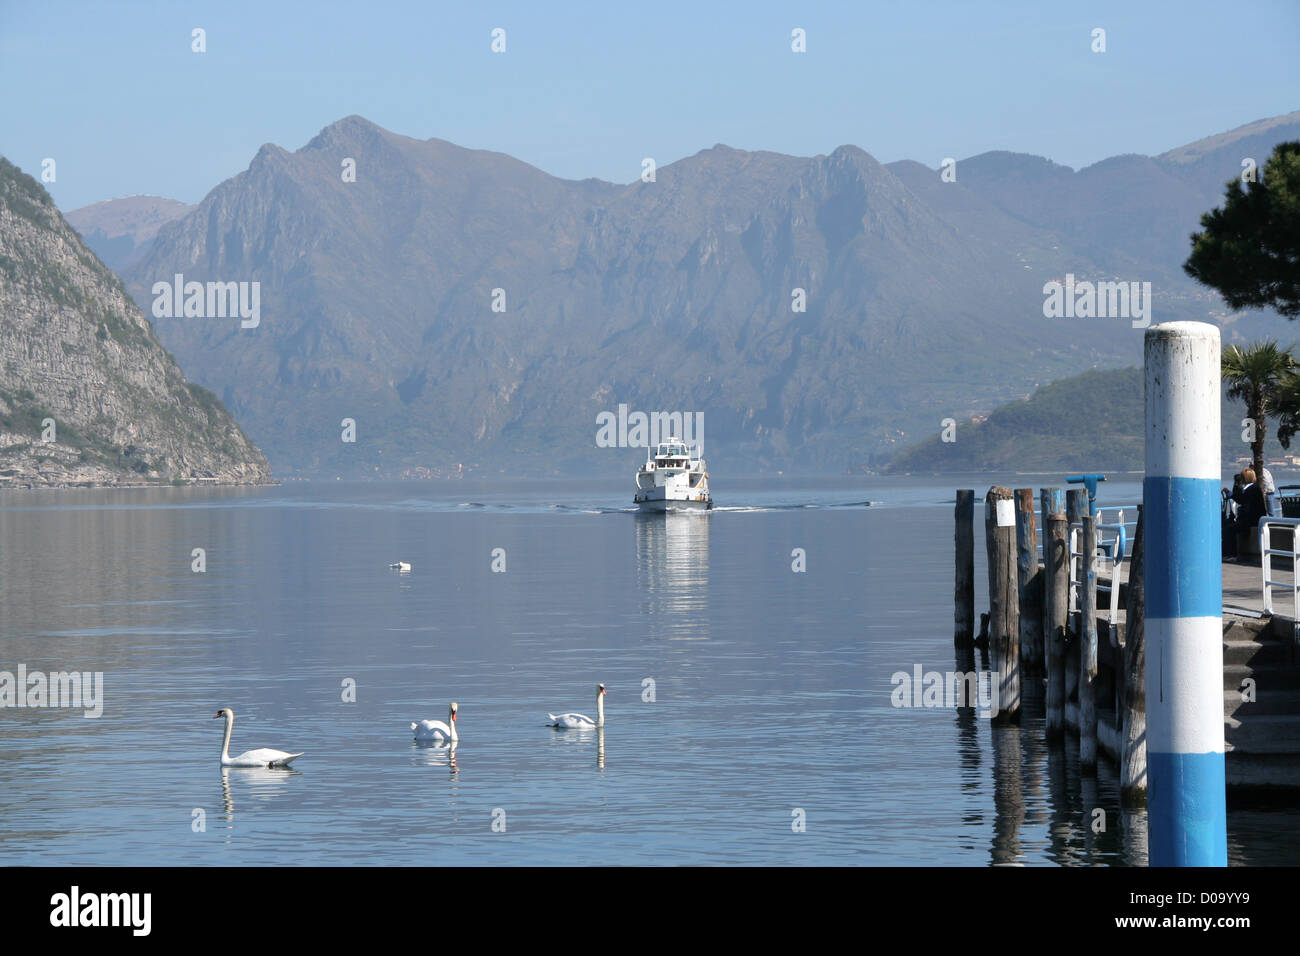 ferry on calm waters of Lago d'iseo, Italy - Stock Image